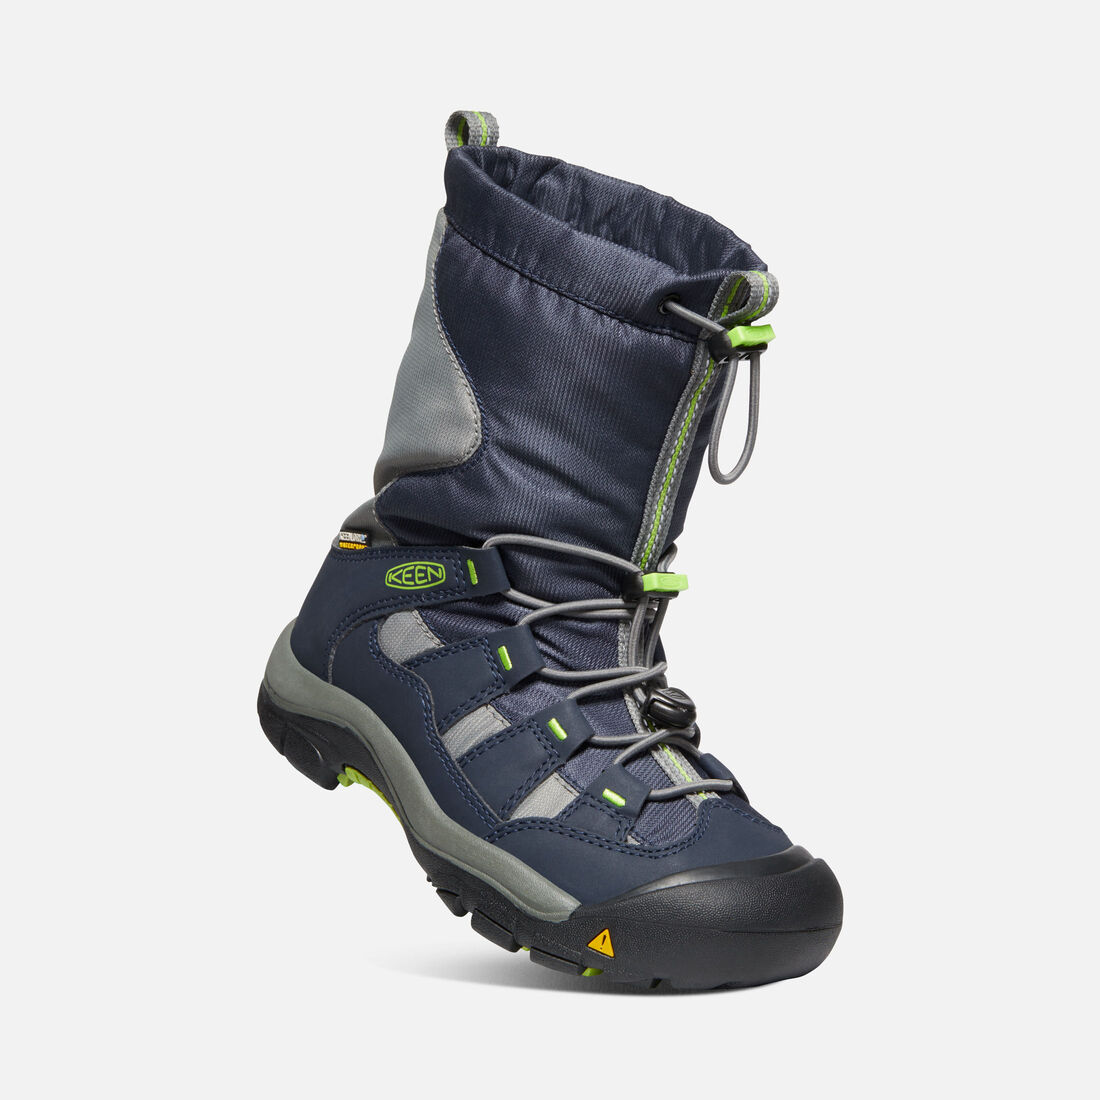 KEEN WINTERPORT blue nights/greenery vel.30